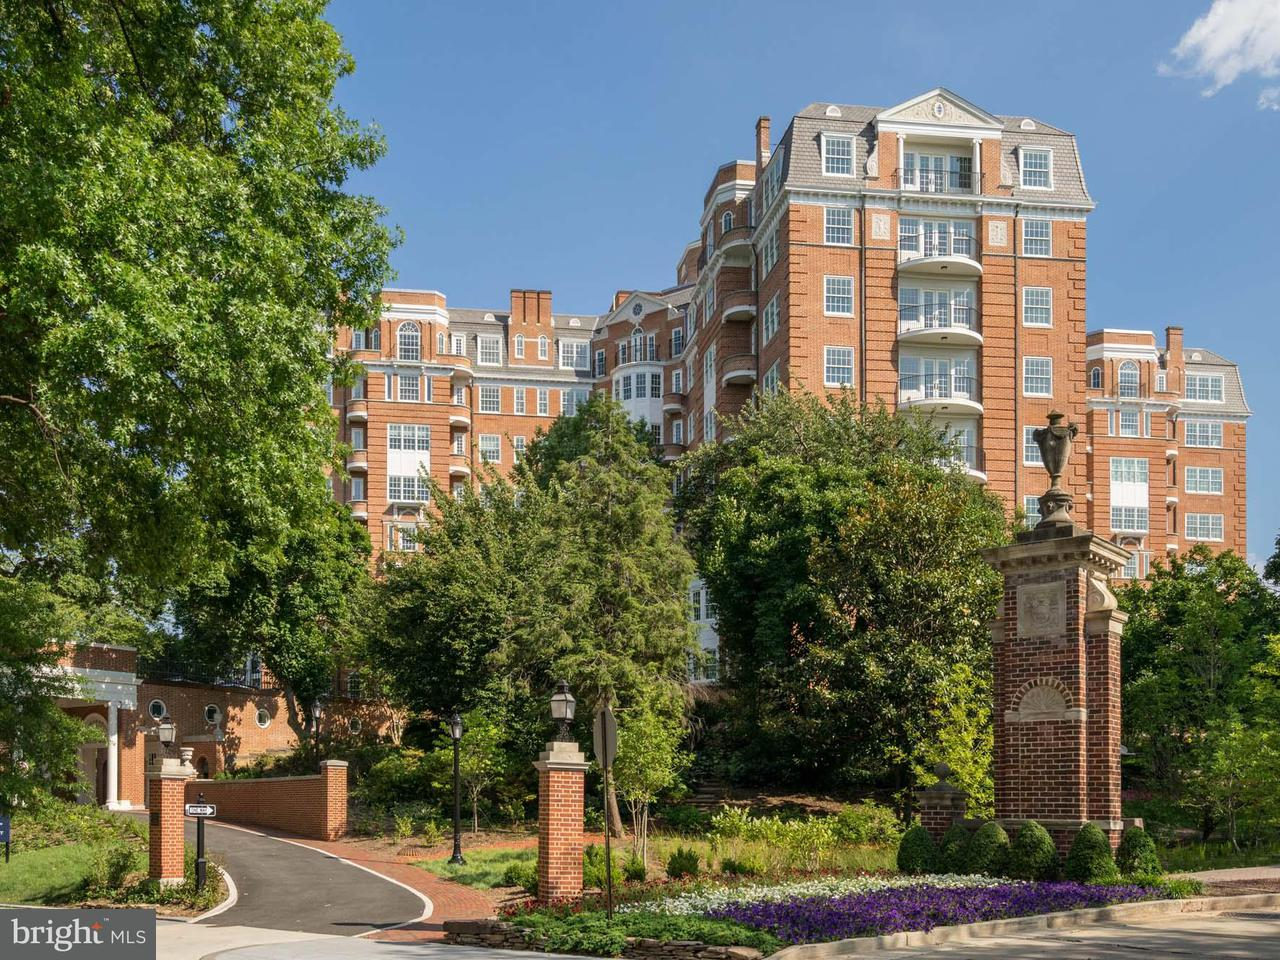 Condominium for Sale at 2660 Connecticut Ave Nw #5d 2660 Connecticut Ave Nw #5d Washington, District Of Columbia 20008 United States